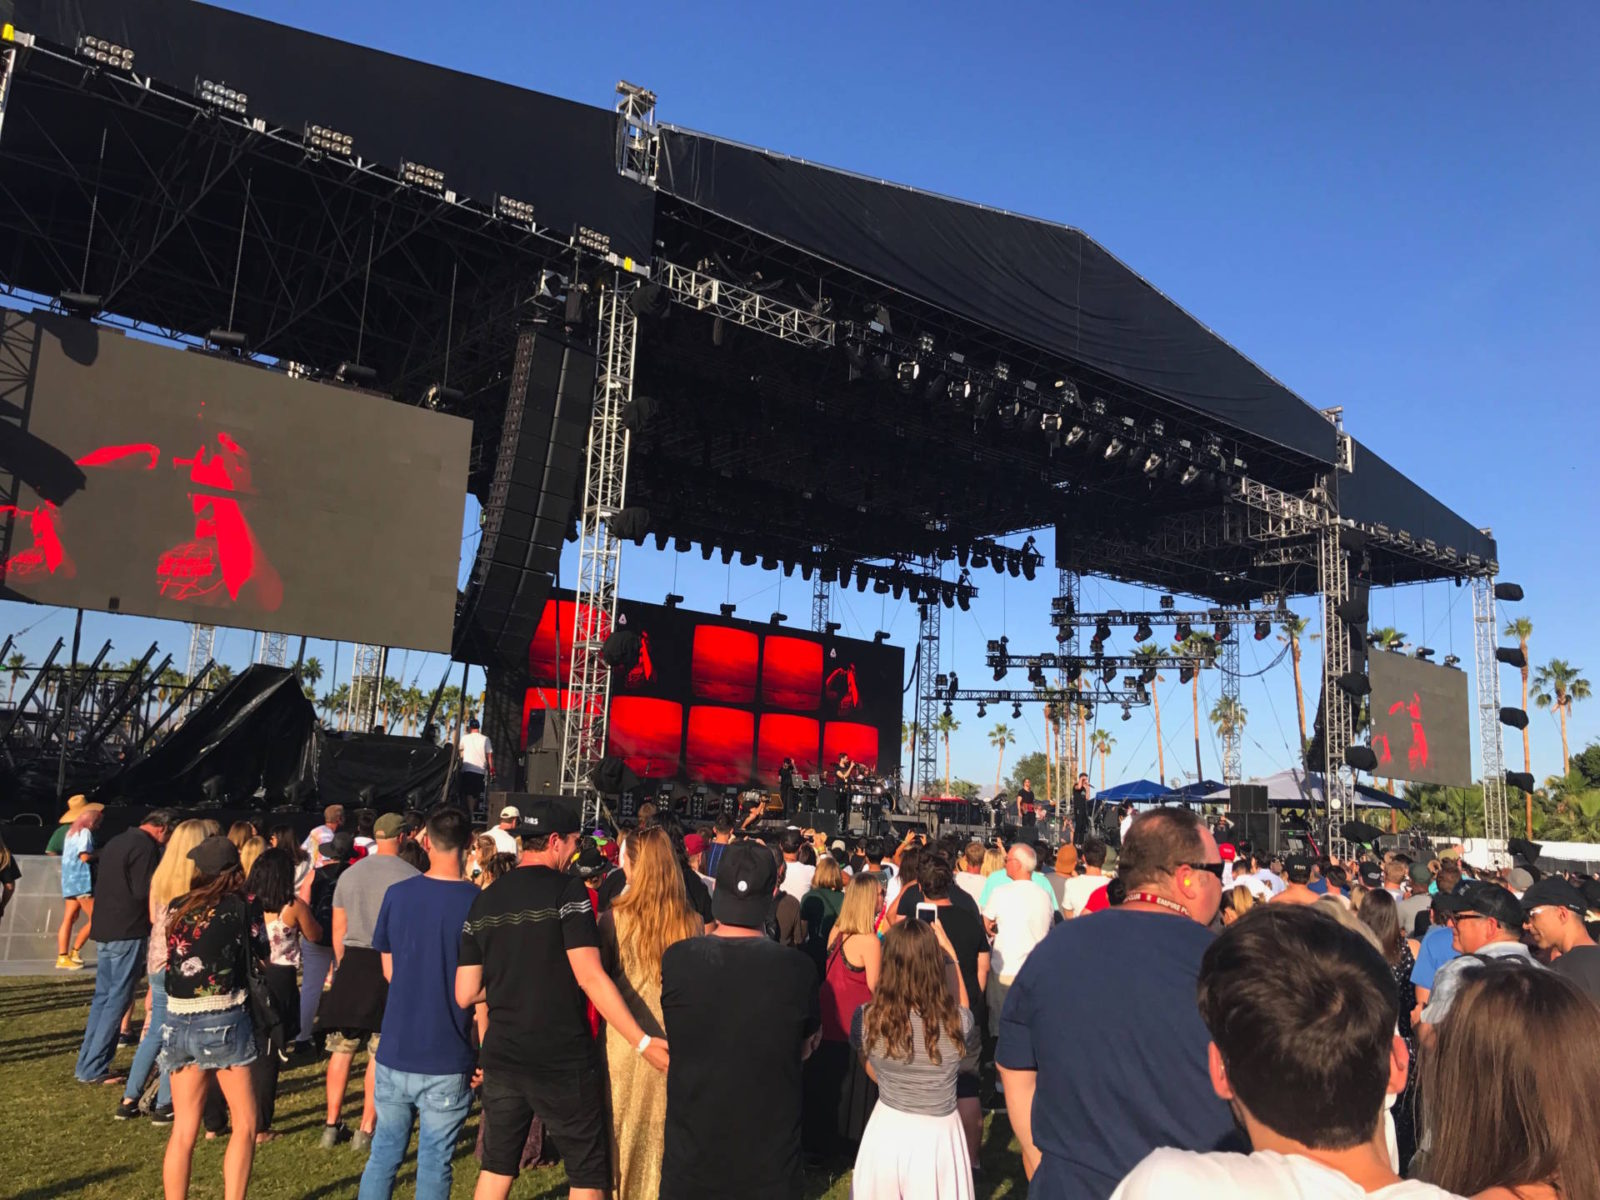 My first Coachella - StefanieGrace.com